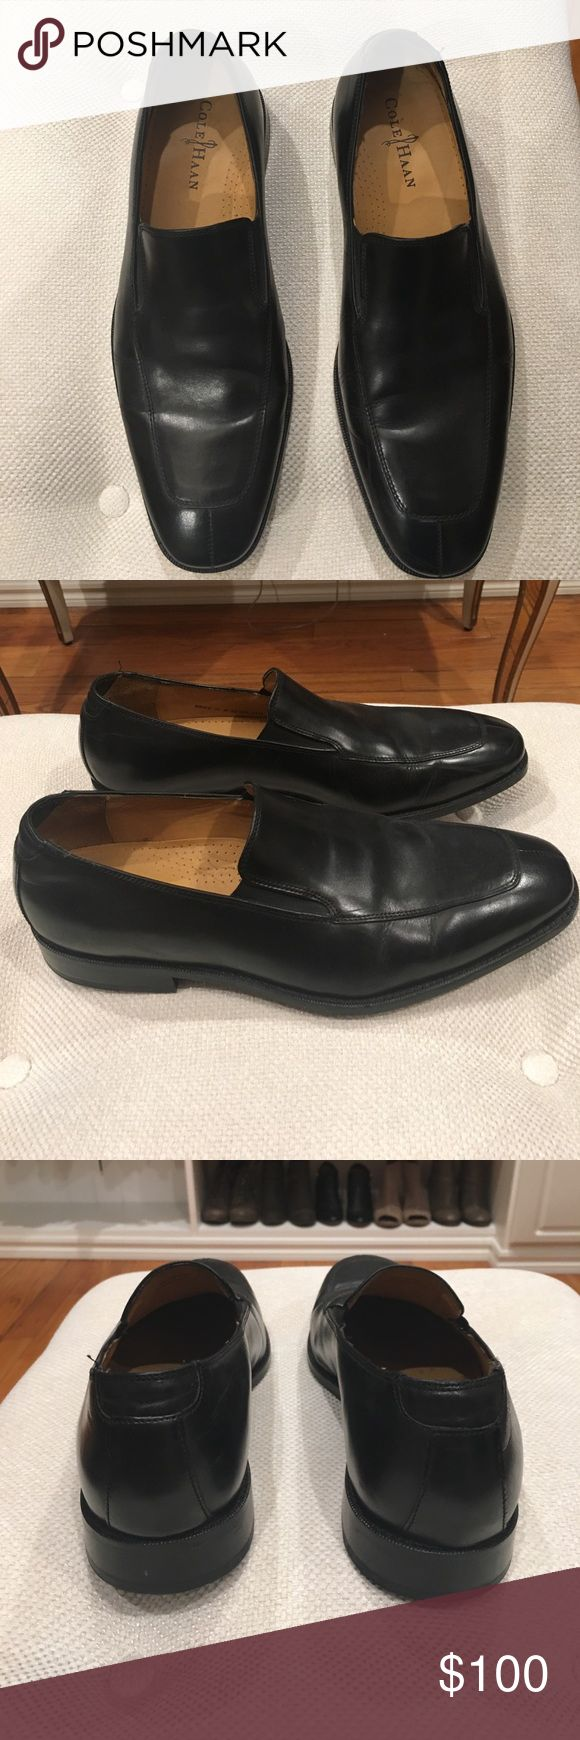 Cole Haan men's size dress shoes Cole Haan men's dress shoe in black size 11 M. Worn twice in very good condition. Cole Haan Shoes